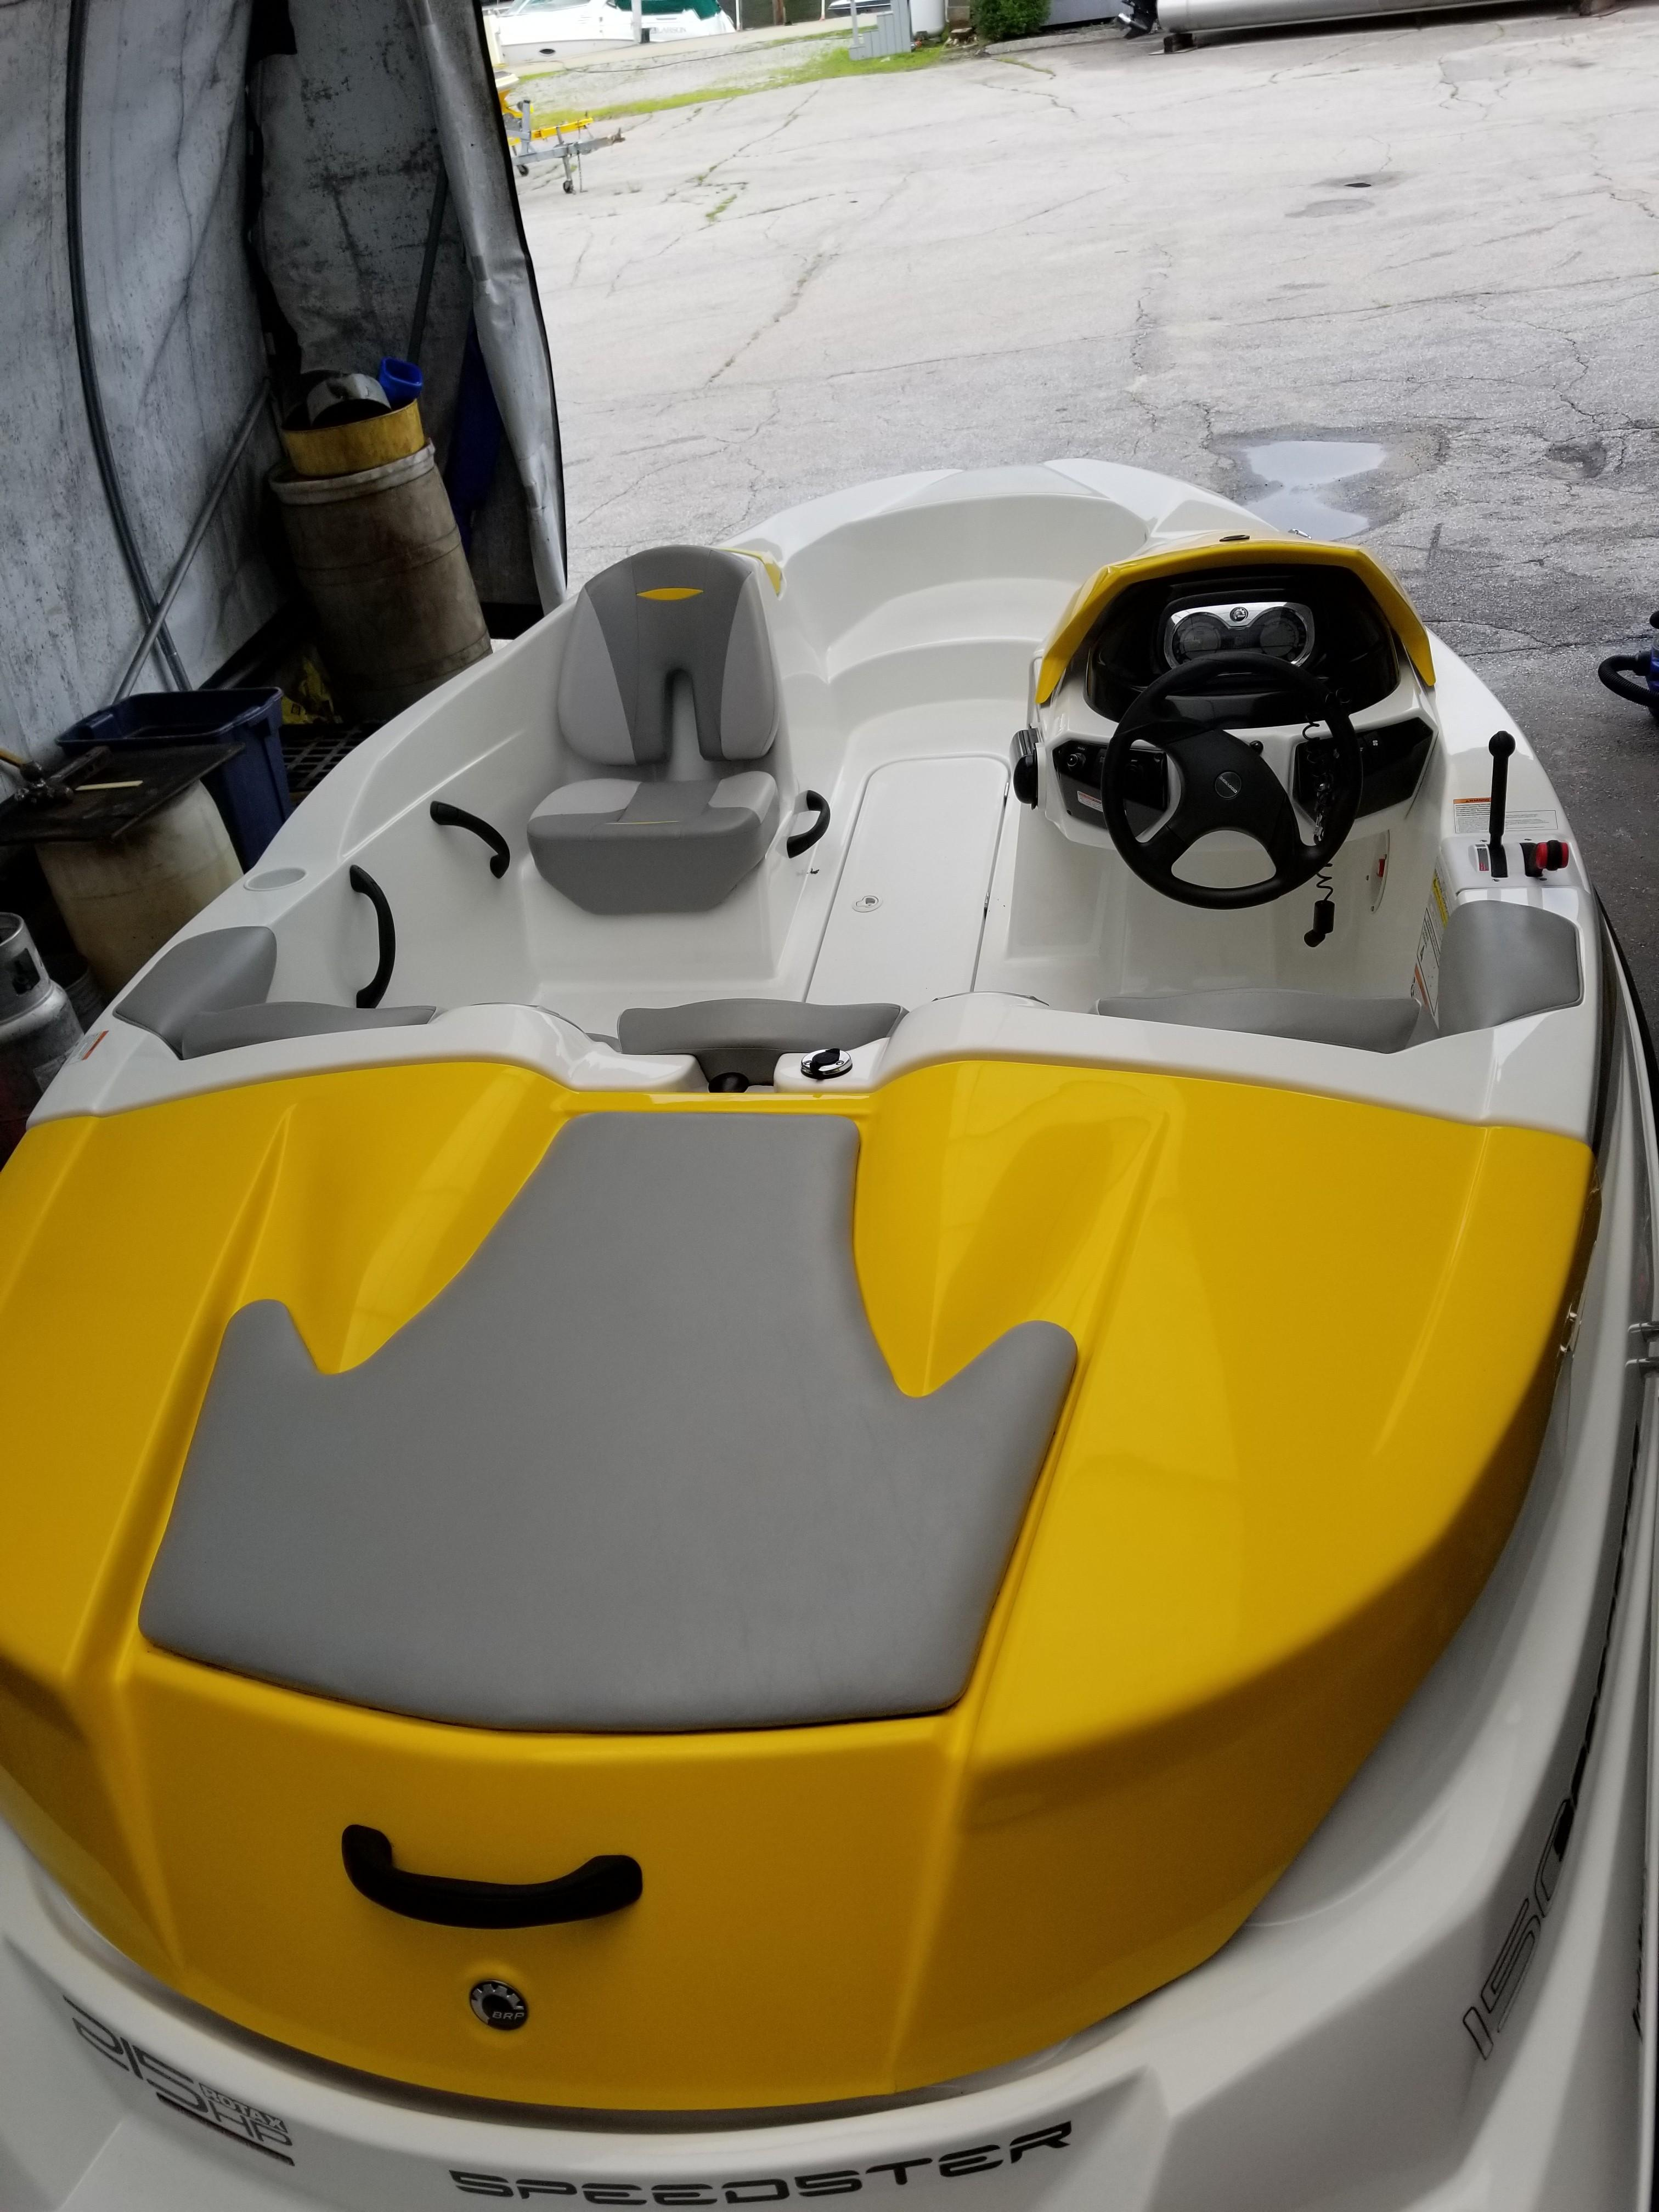 2009 Sea Doo Sportboat boat for sale, model of the boat is 150 Speedster & Image # 15 of 16